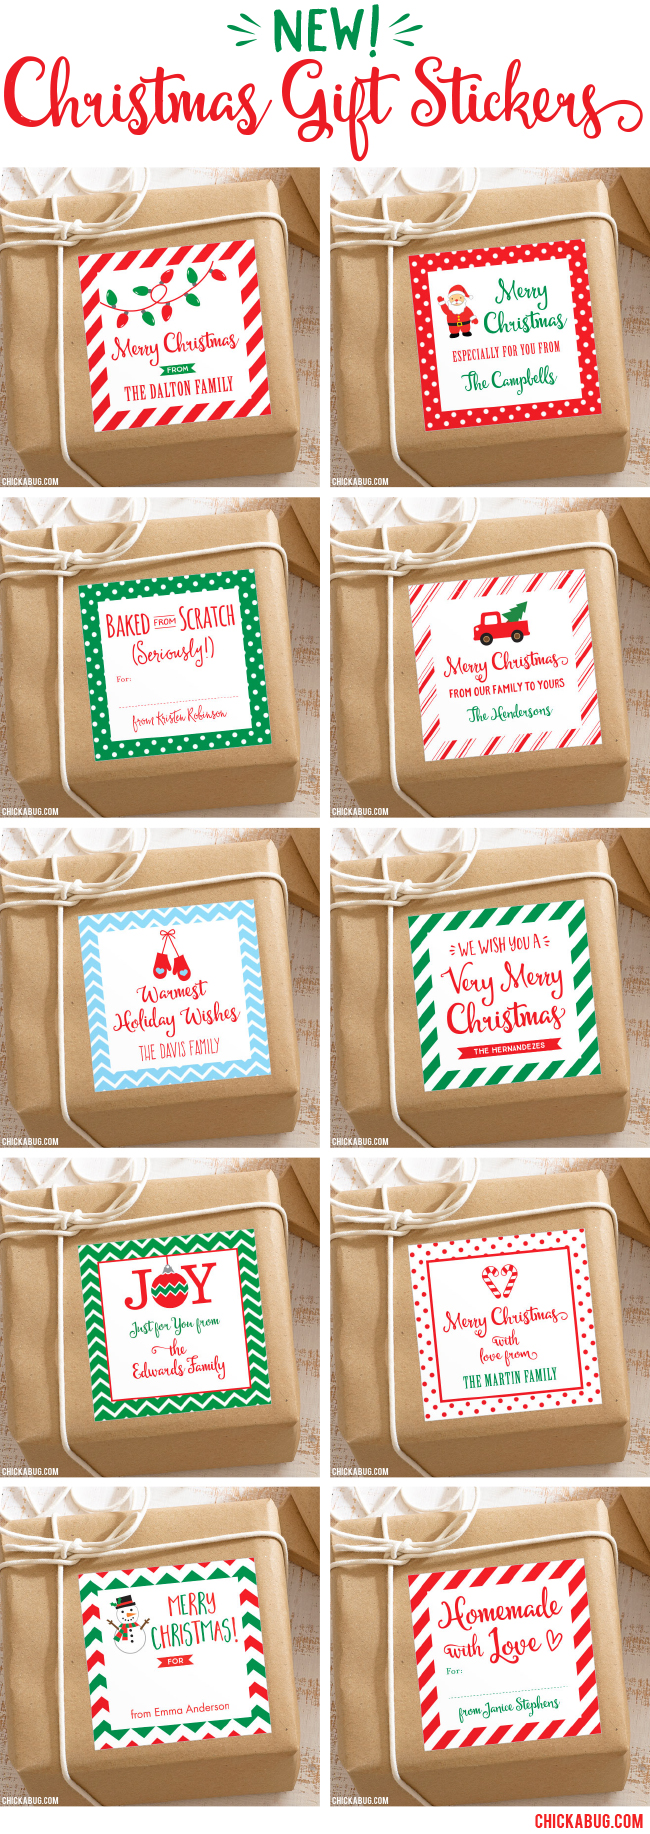 Personalized Christmas gift stickers, now available at Chickabug. They make your Christmas presents extra pretty, and there's no way for the tag to fall off!